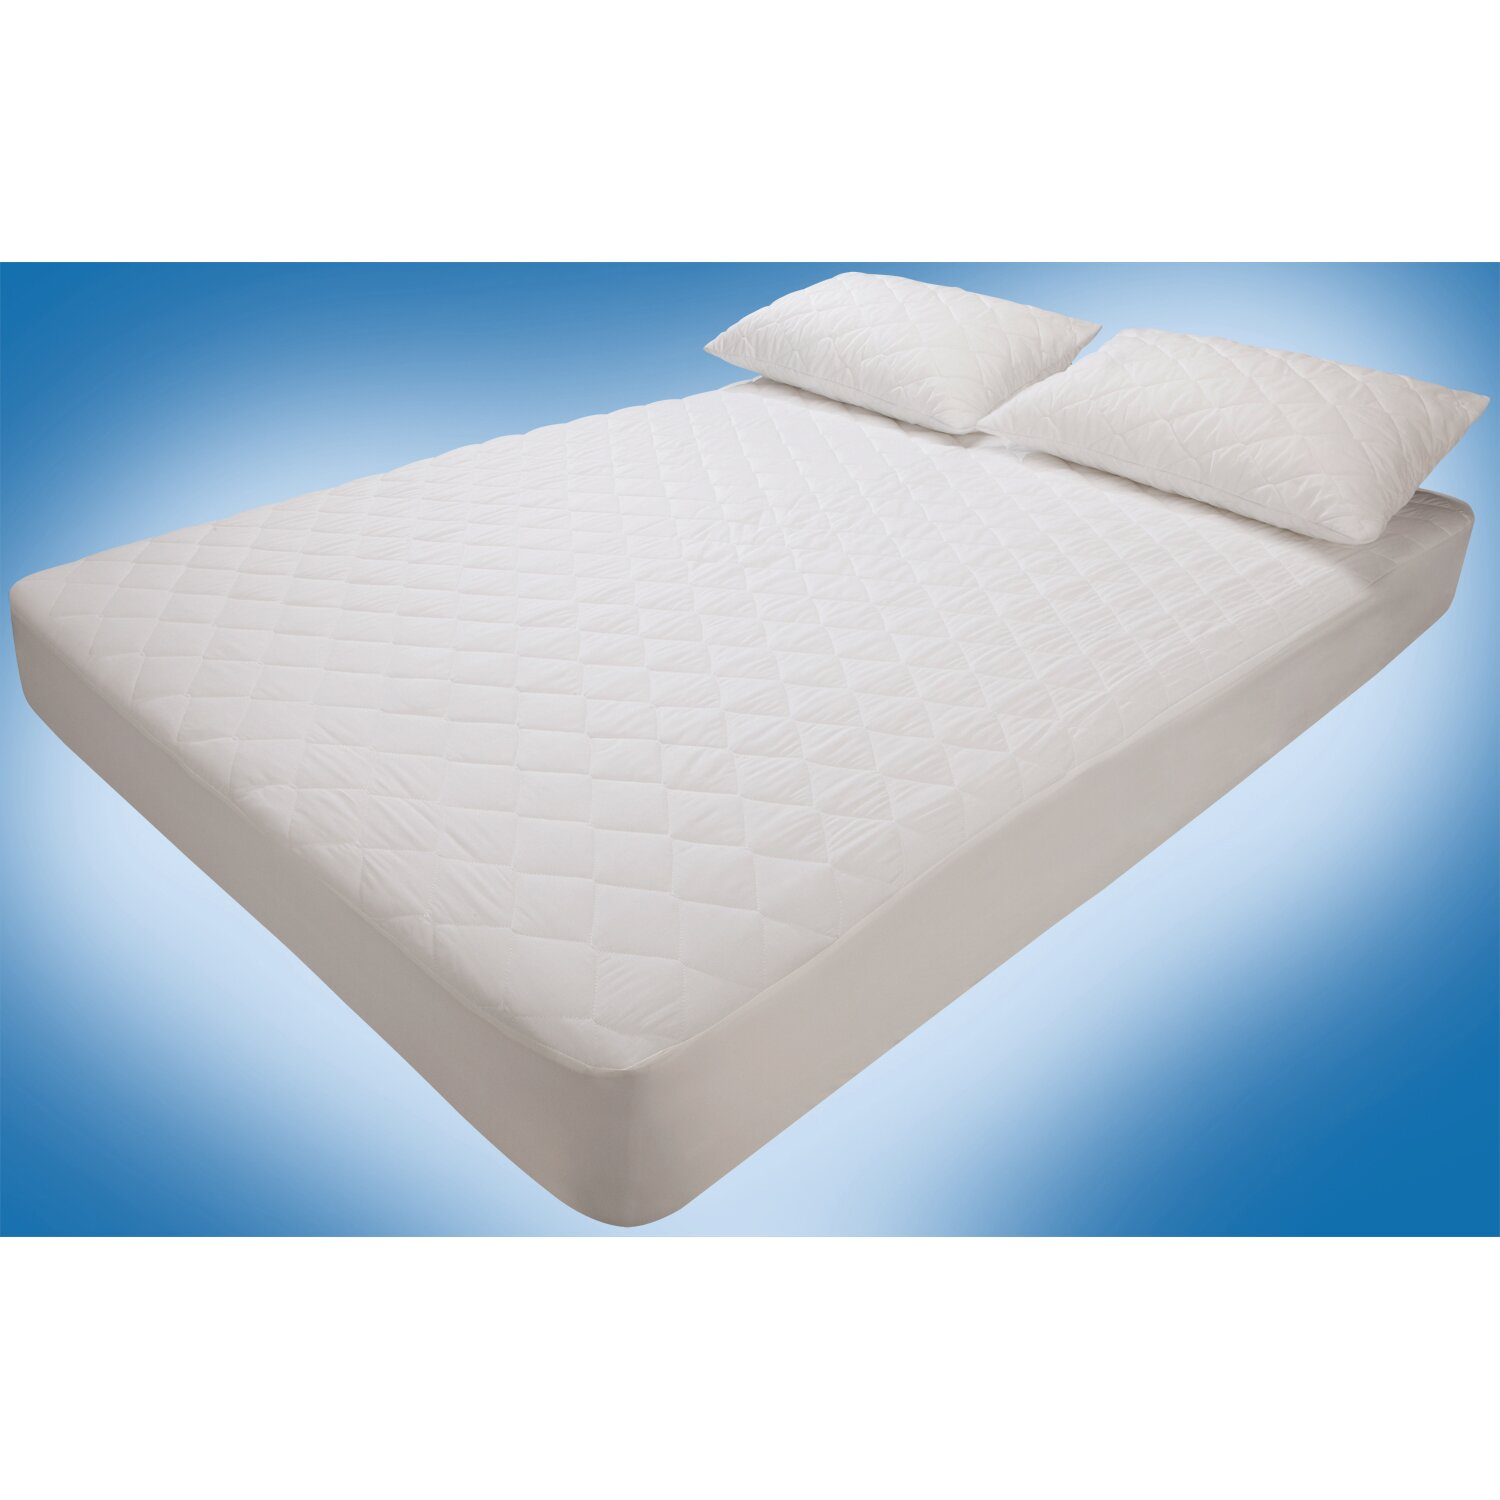 Dog Bed Mattress Protector